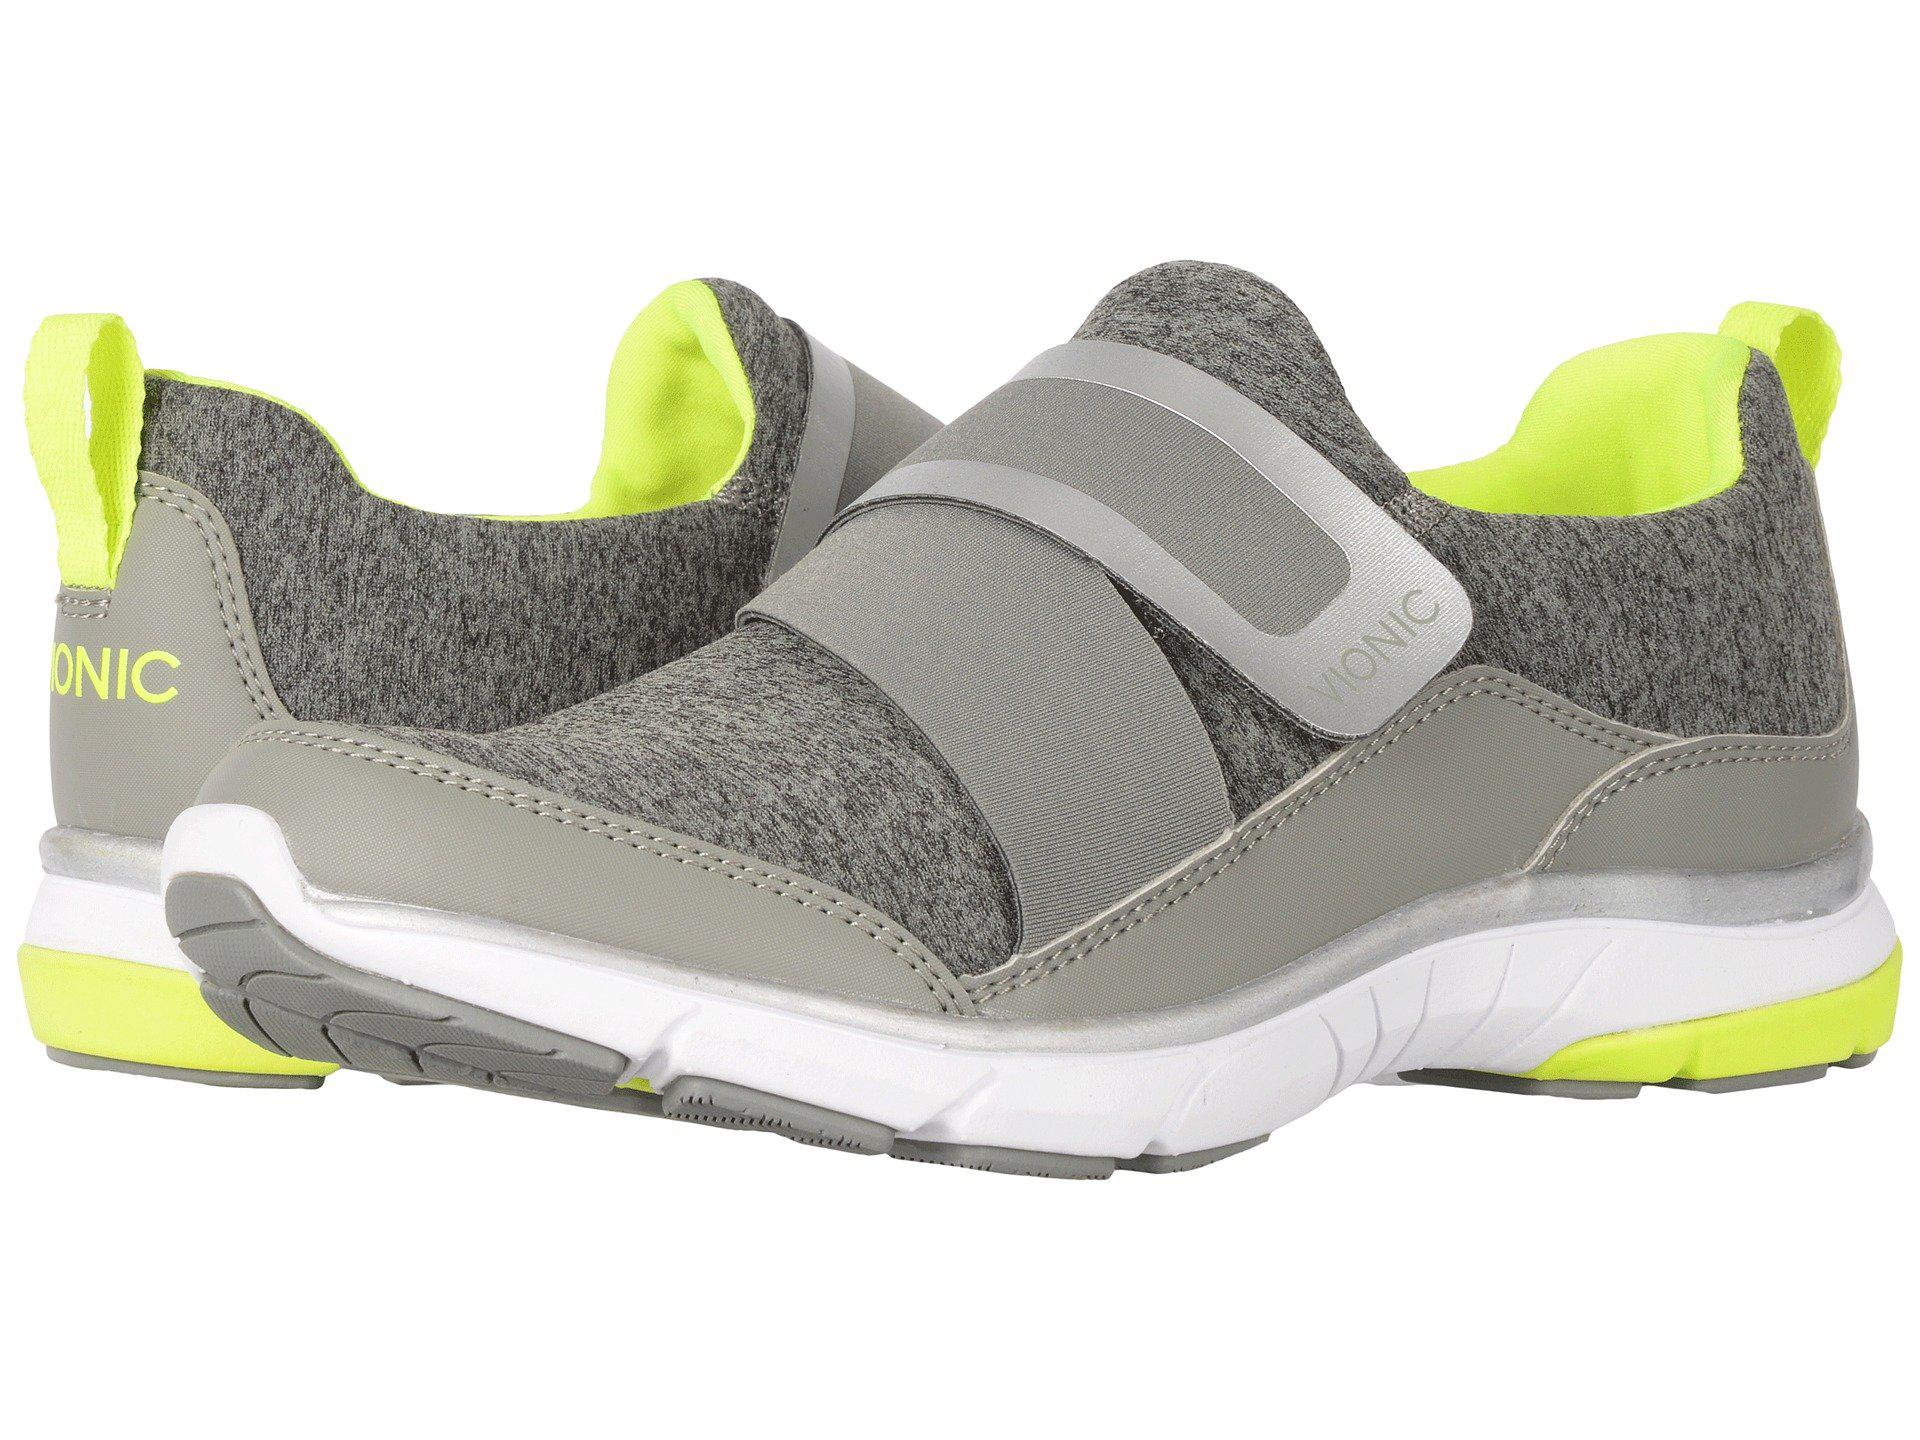 Vionic Women's Darcy Fitness Shoes Free Shipping Prices Pukoxk7U